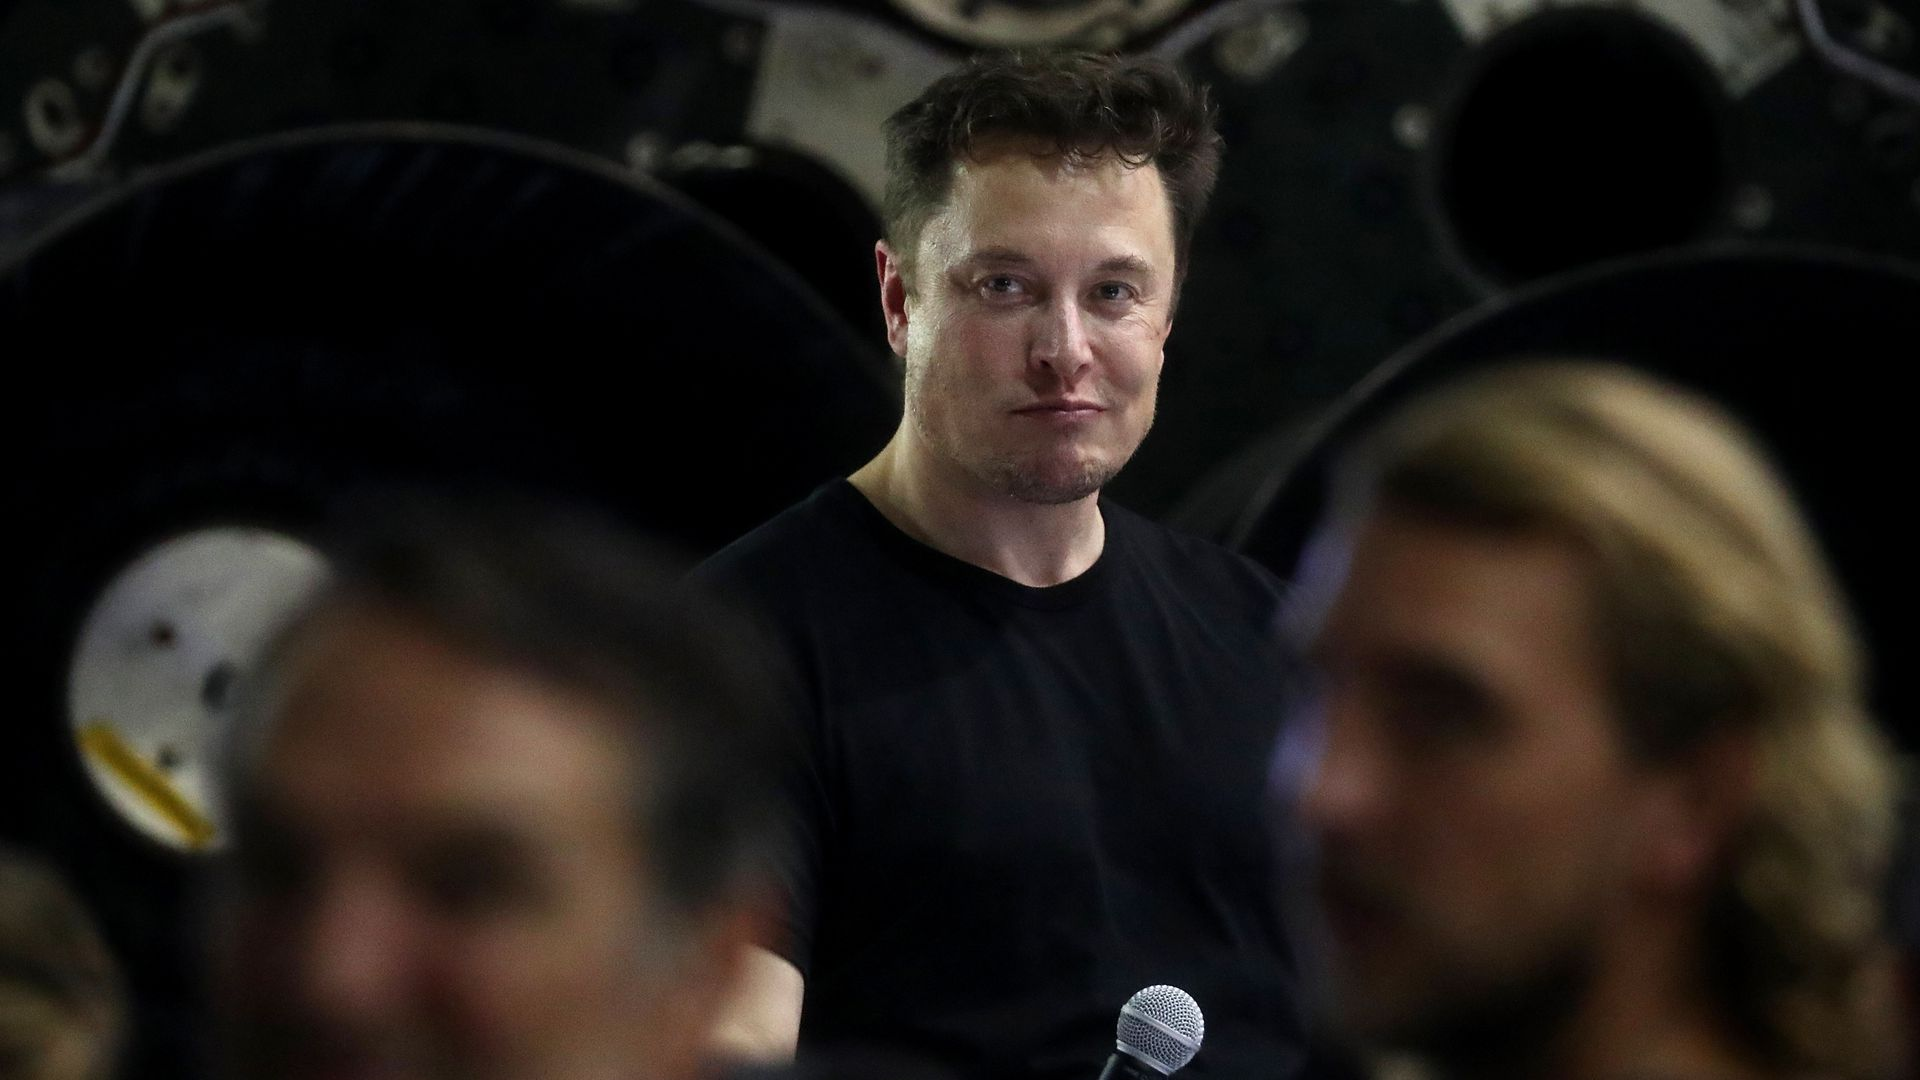 Elon Musk holds a microphone in a crowd.